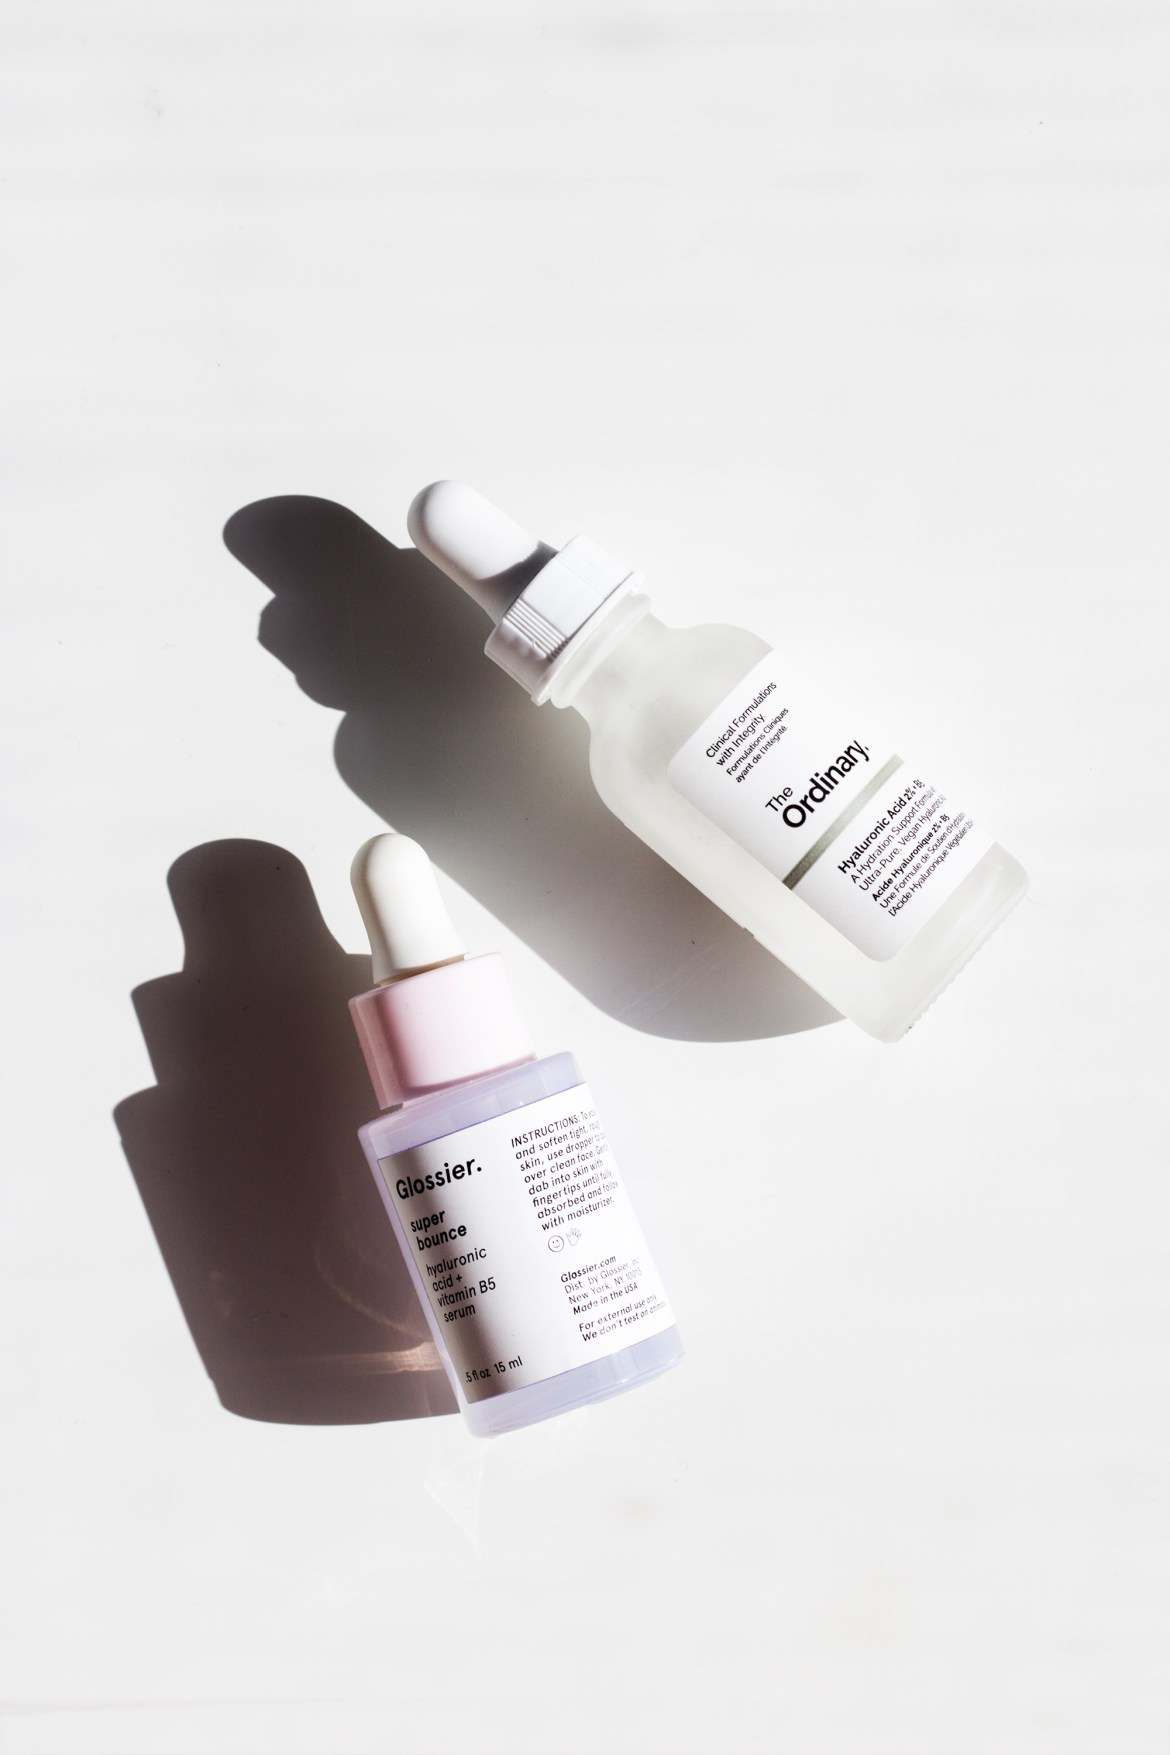 Glossier vs The Ordinary super bounces vs hyaluronic acid serum